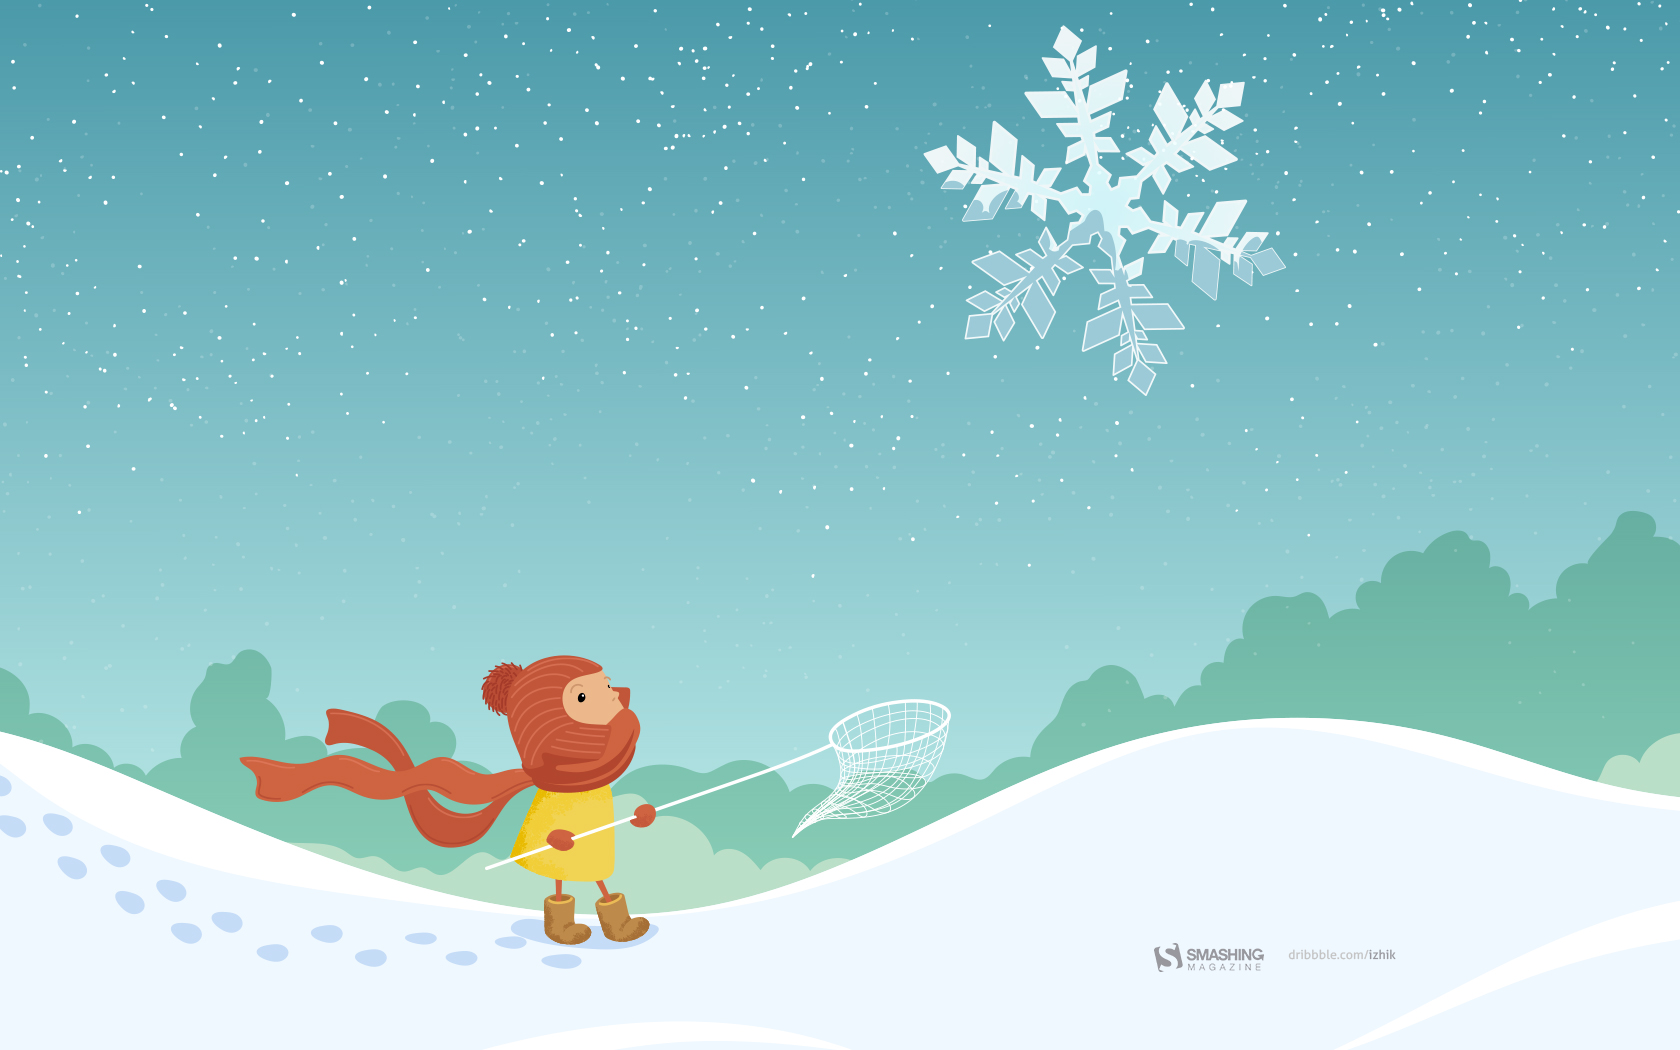 Classic Christmas Motion Background Animation Perfecty: Snow, Ice And Frost ☃️ 48 Winter Wallpapers!